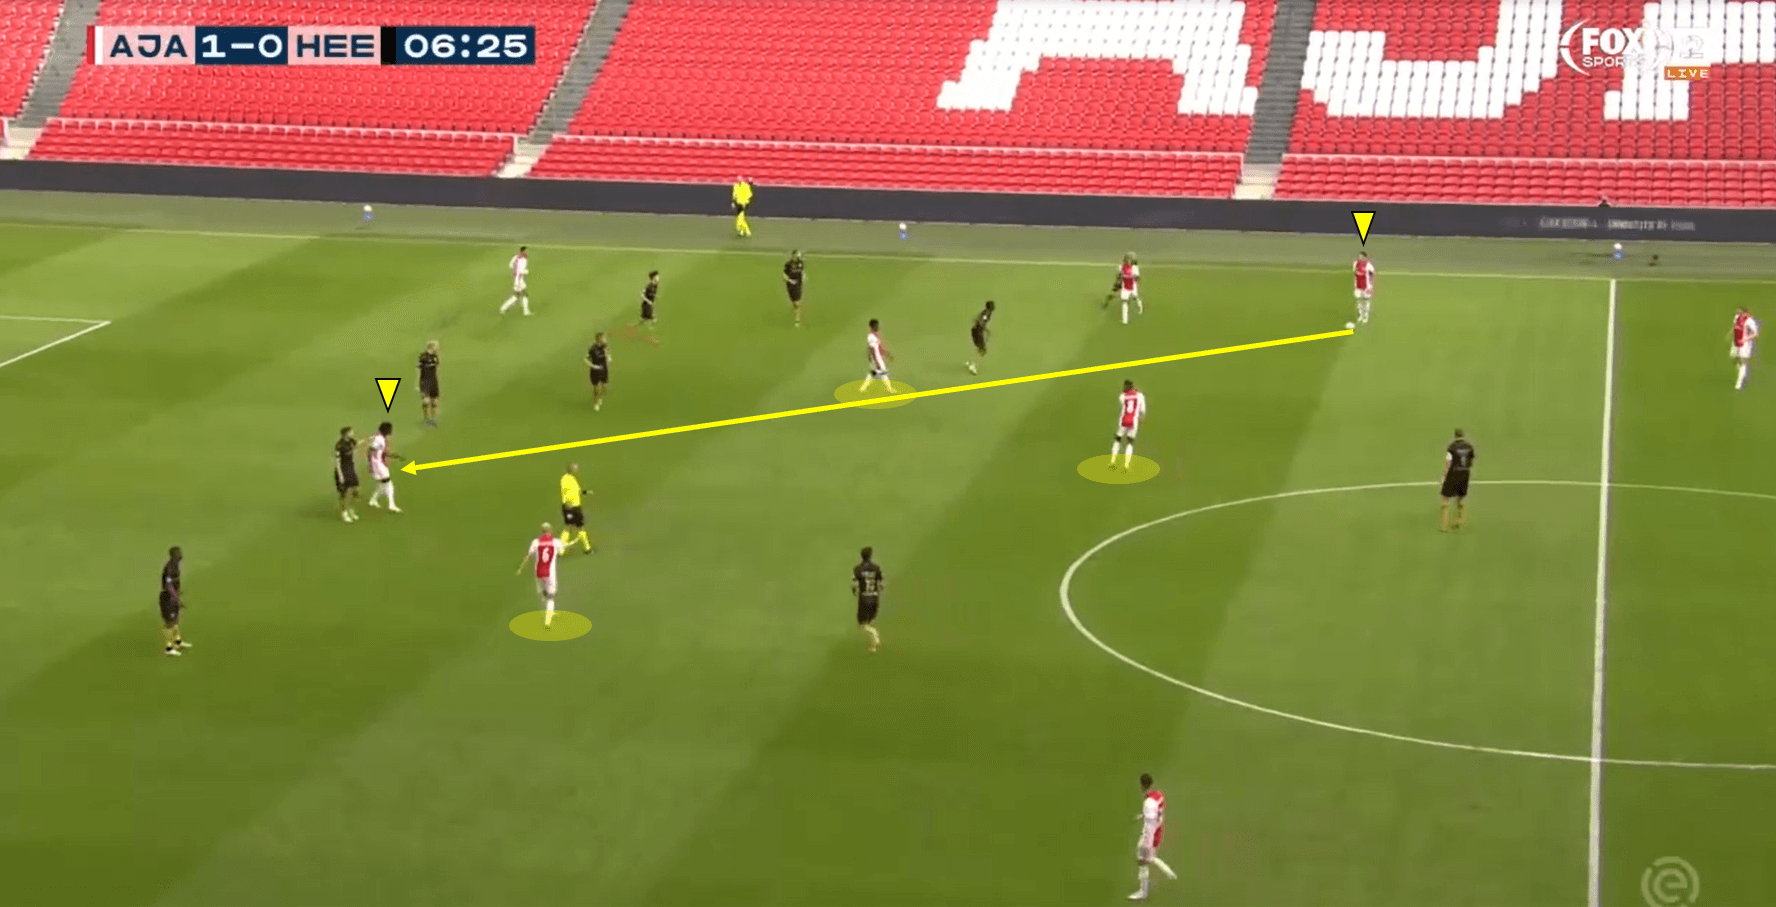 Eredivisie 2020/21: Ajax vs Heerenveen – Tactical Analysis Tactics